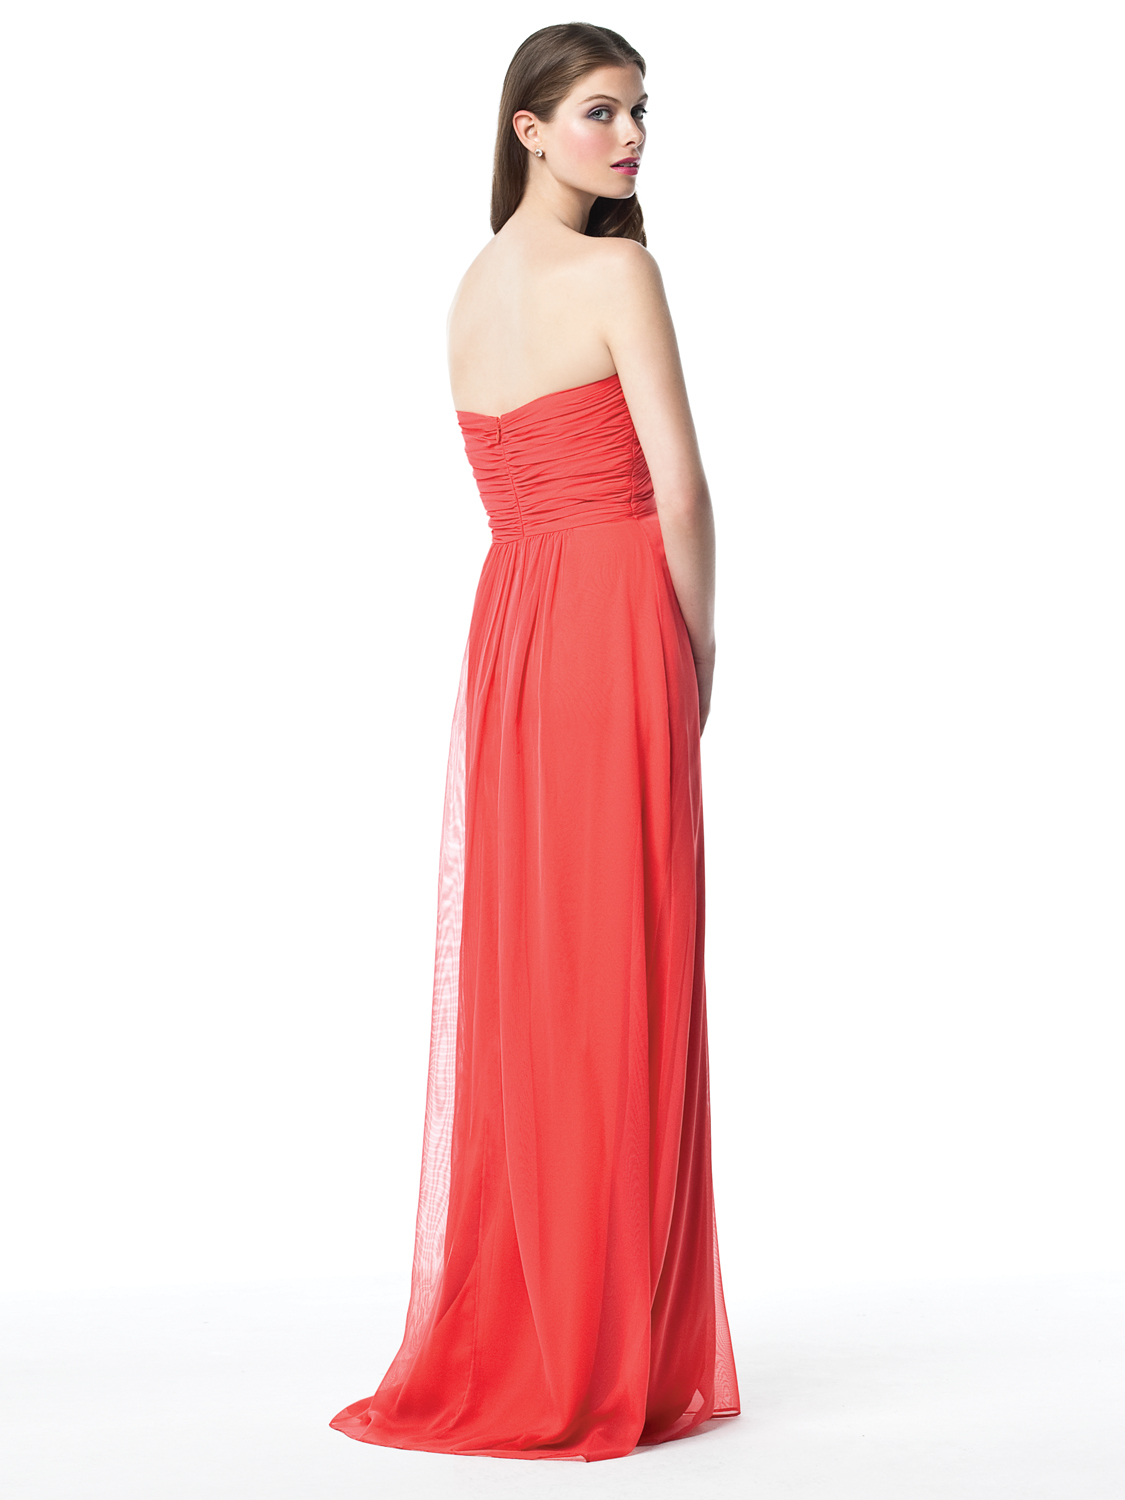 Affordable bridesmaid dresses portland or wedding short dresses affordable bridesmaid dresses portland or 78 ombrellifo Image collections